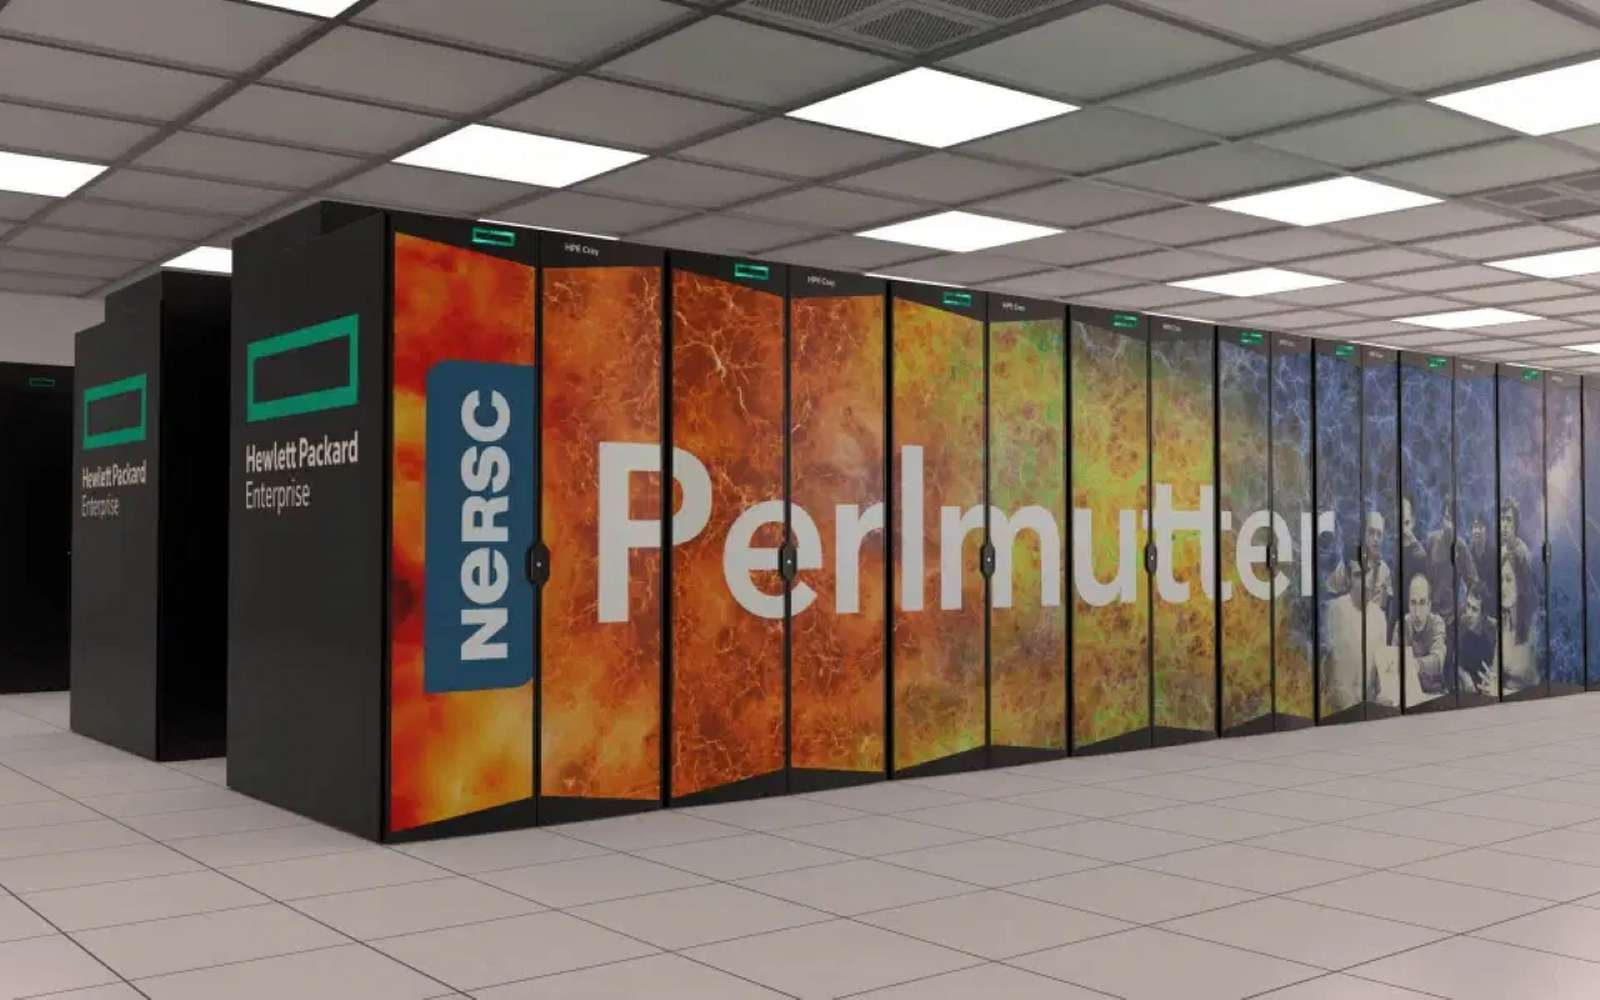 This supercomputer will create the largest 3D map of the Universe